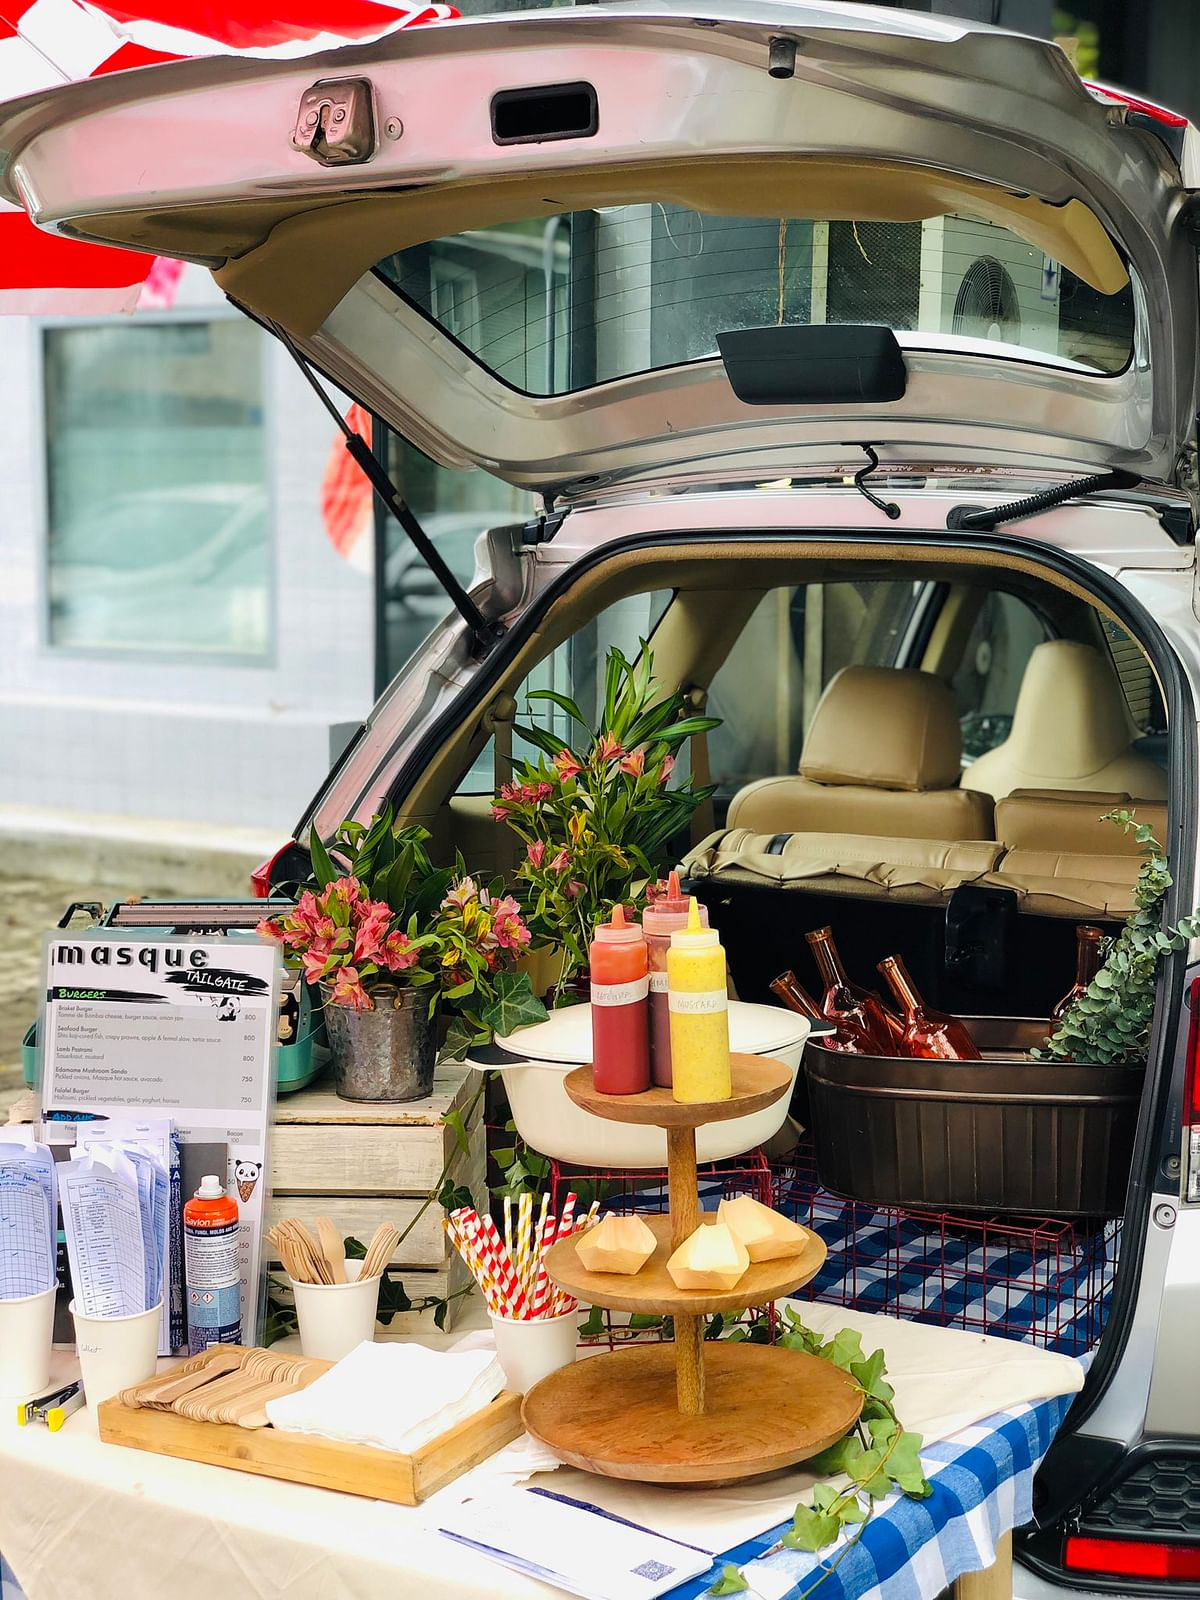 Outdoor dining via Masque Tailgate. The restaurant served patrons in an open air parking area in 2020 when the coronavirus was raging in Mumbai. (Image: Masque on Twitter)